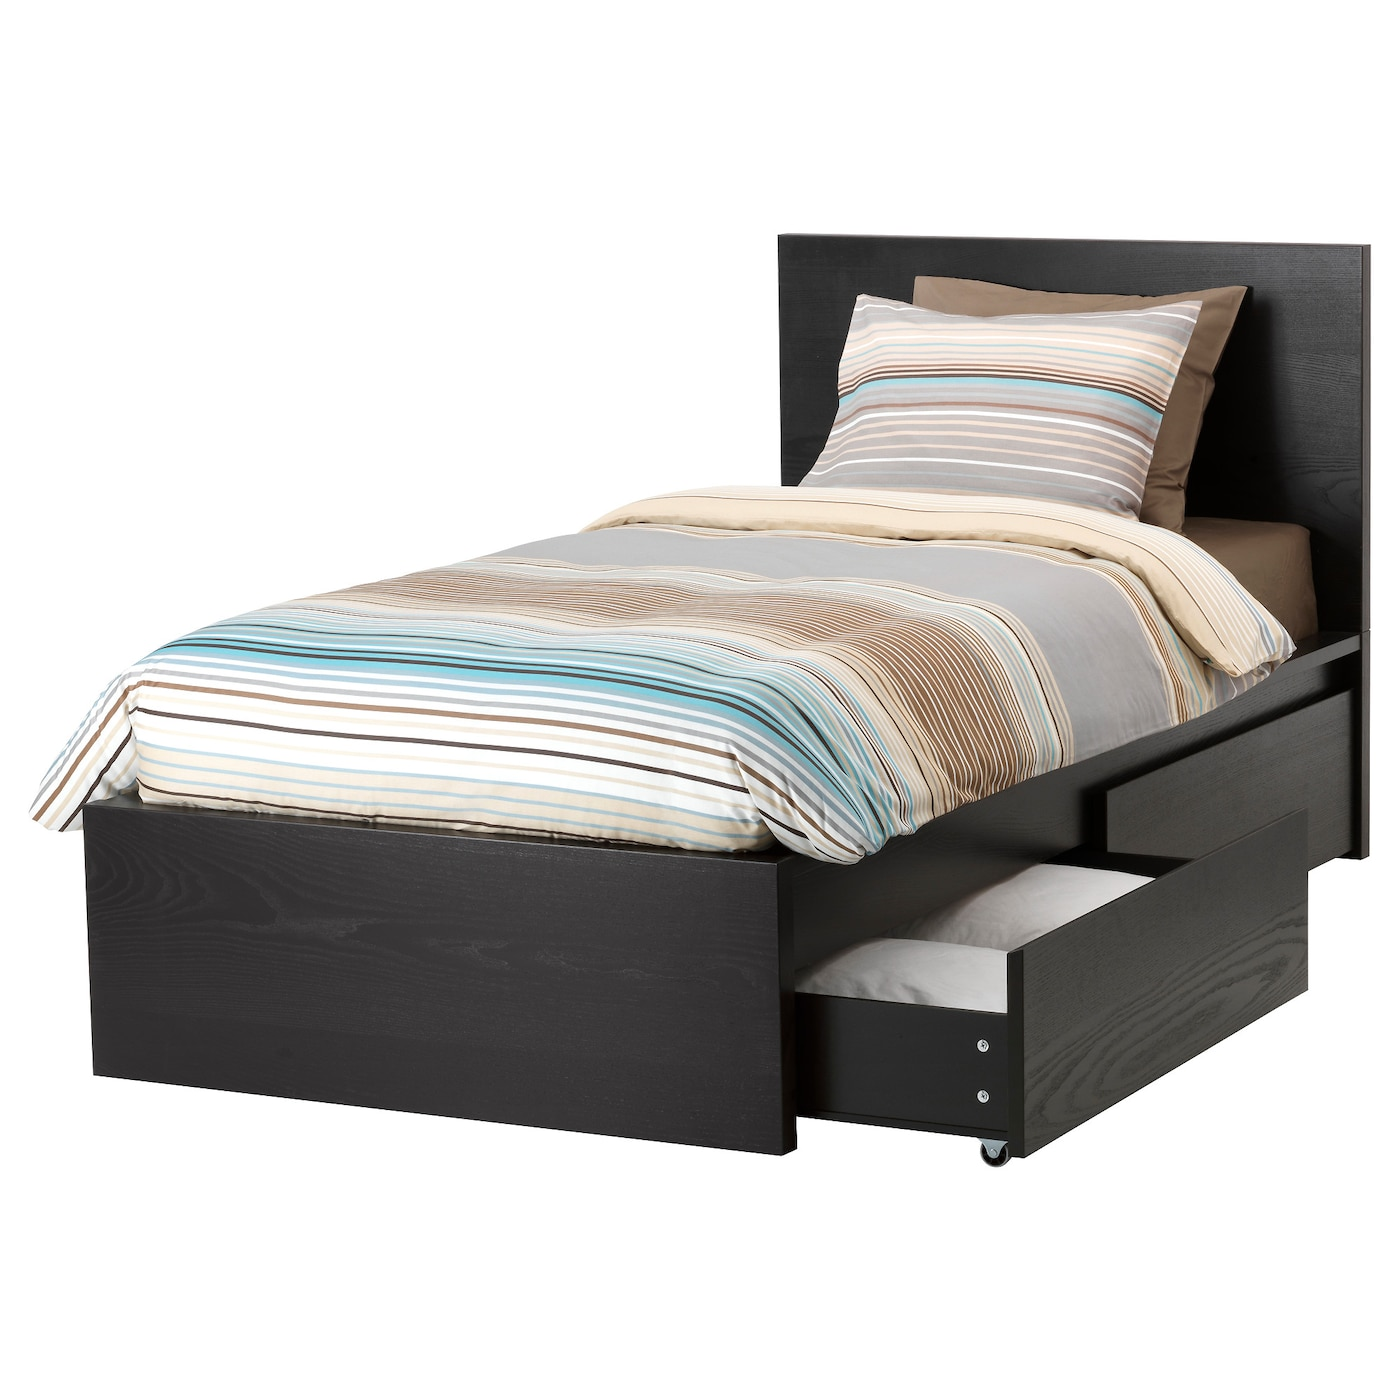 Single Beds & Single Bed Frames IKEA